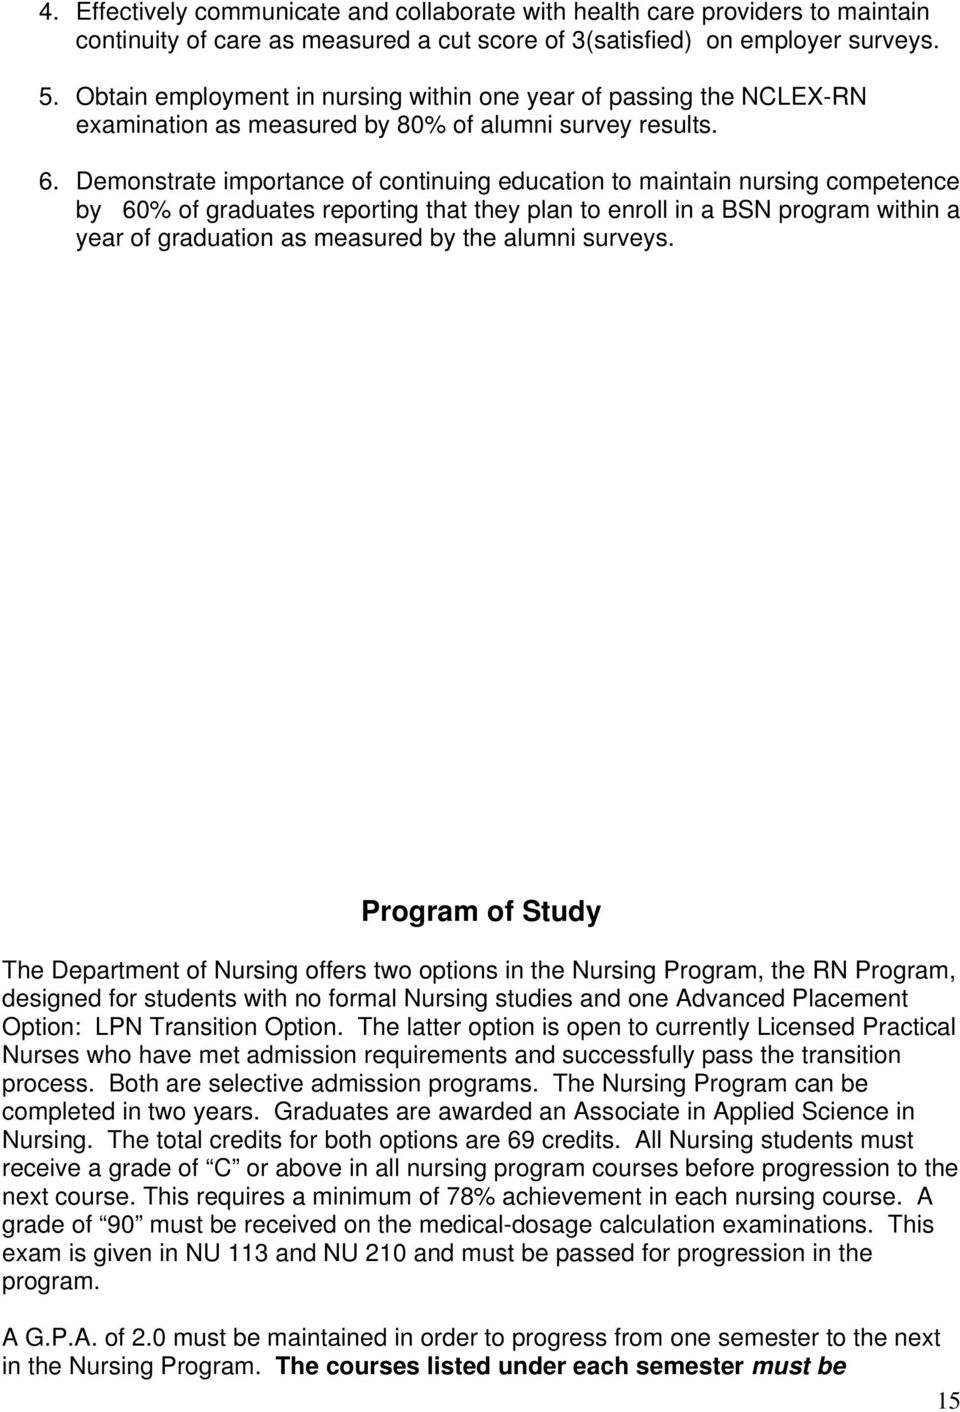 Demonstrate importance of continuing education to maintain nursing competence by 60% of graduates reporting that they plan to enroll in a BSN program within a year of graduation as measured by the